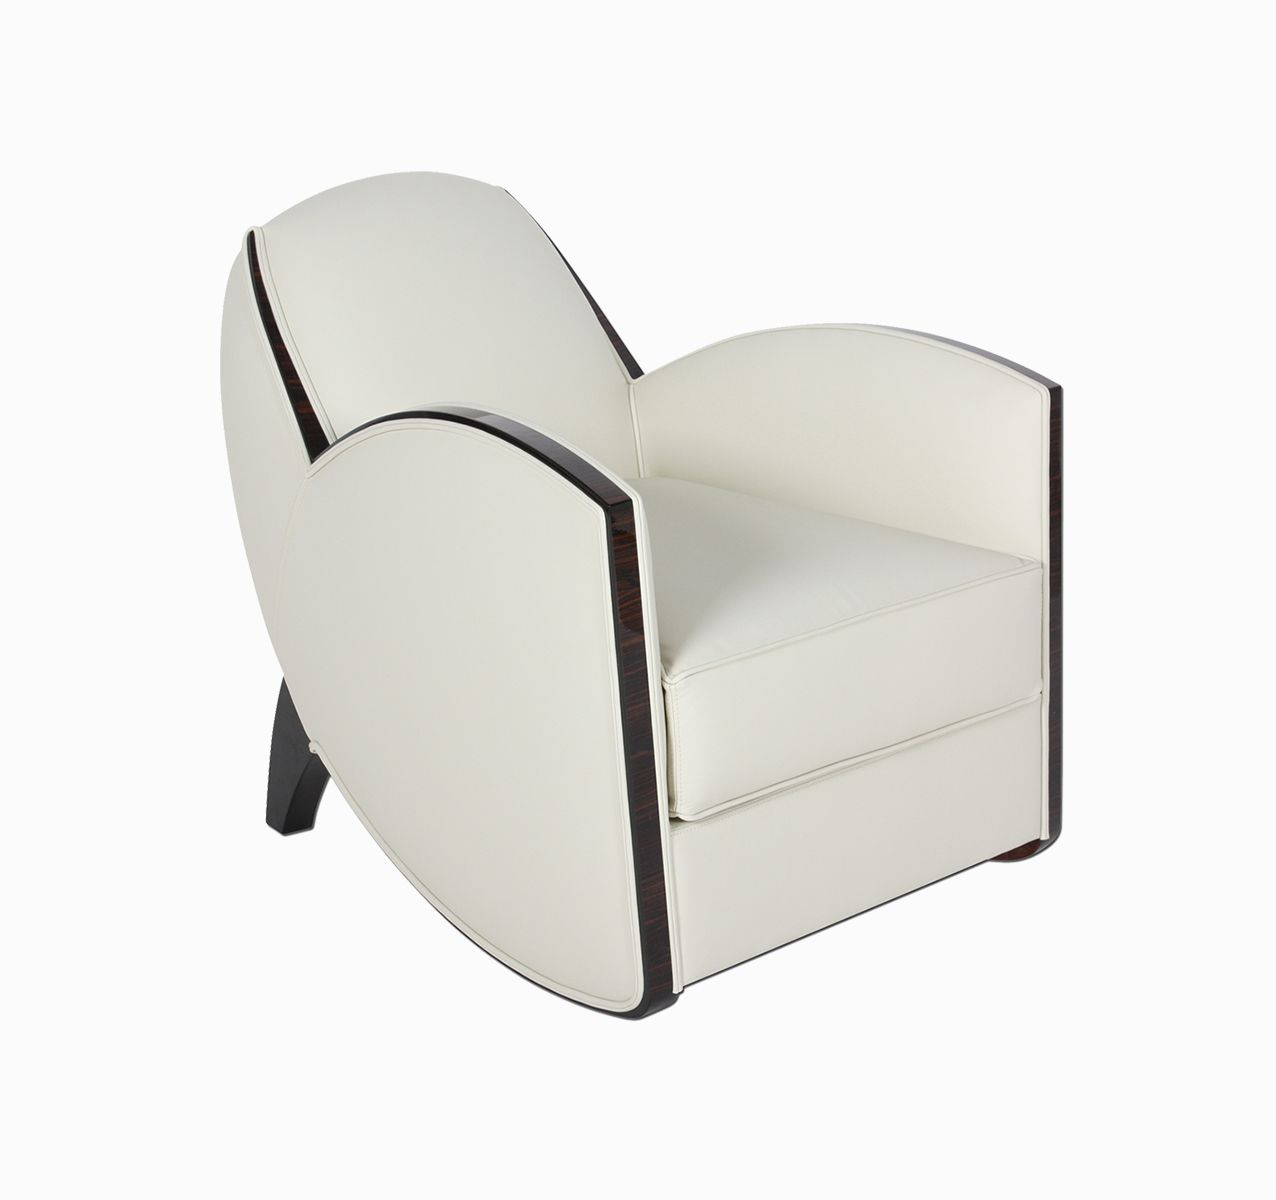 Berühmte Designer Möbel Elegant Armchair In The Style Of The Famous Art Deco